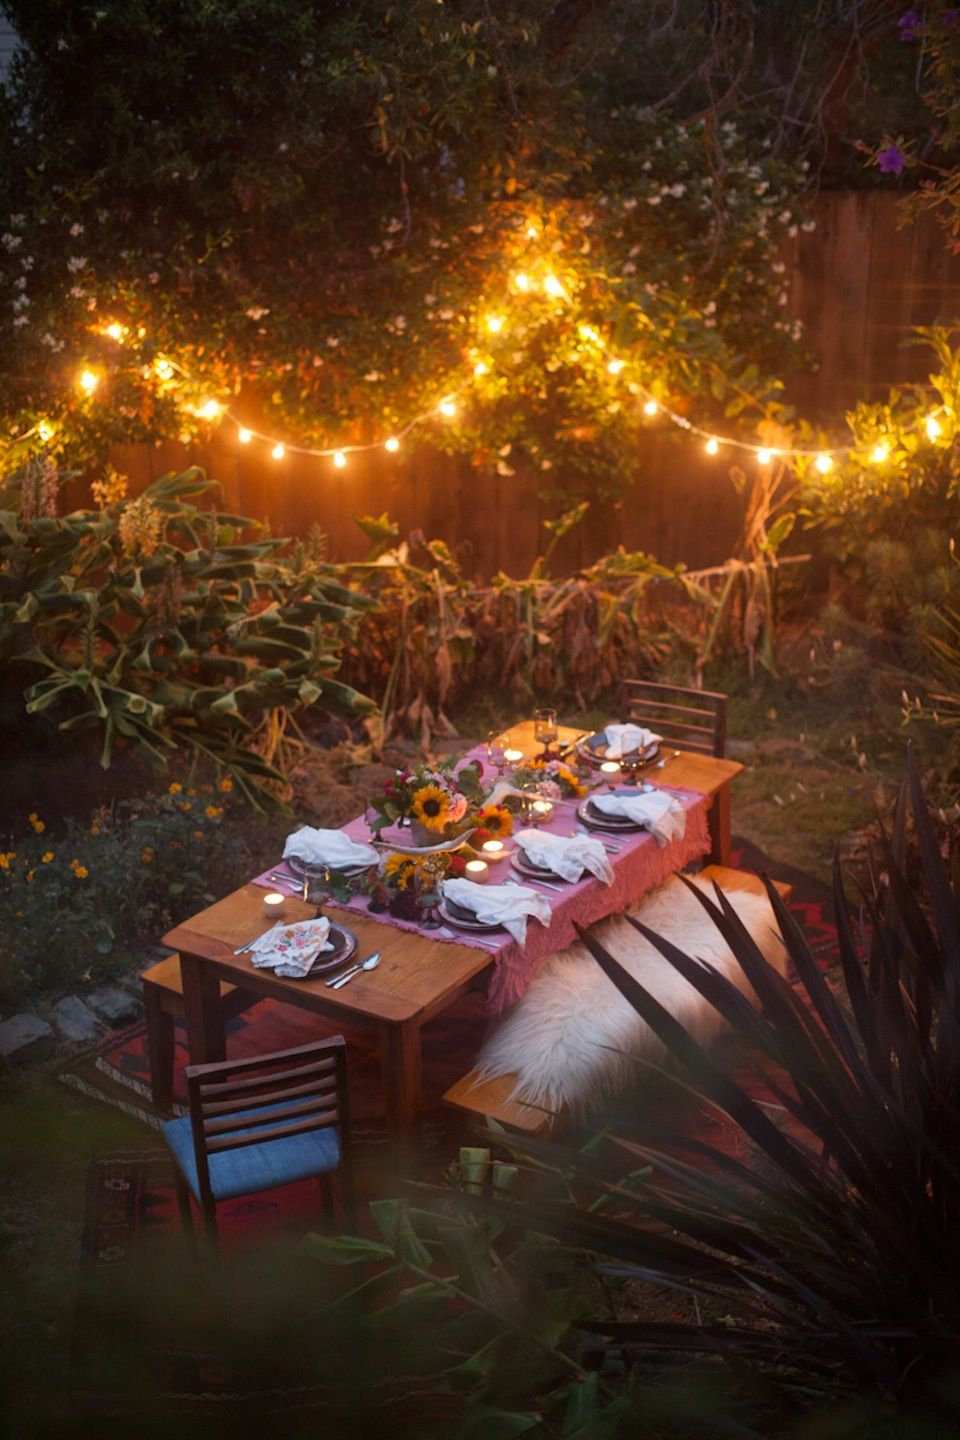 28 Backyard BBQ Party Ideas - How to Throw the Best Summer Barbecue